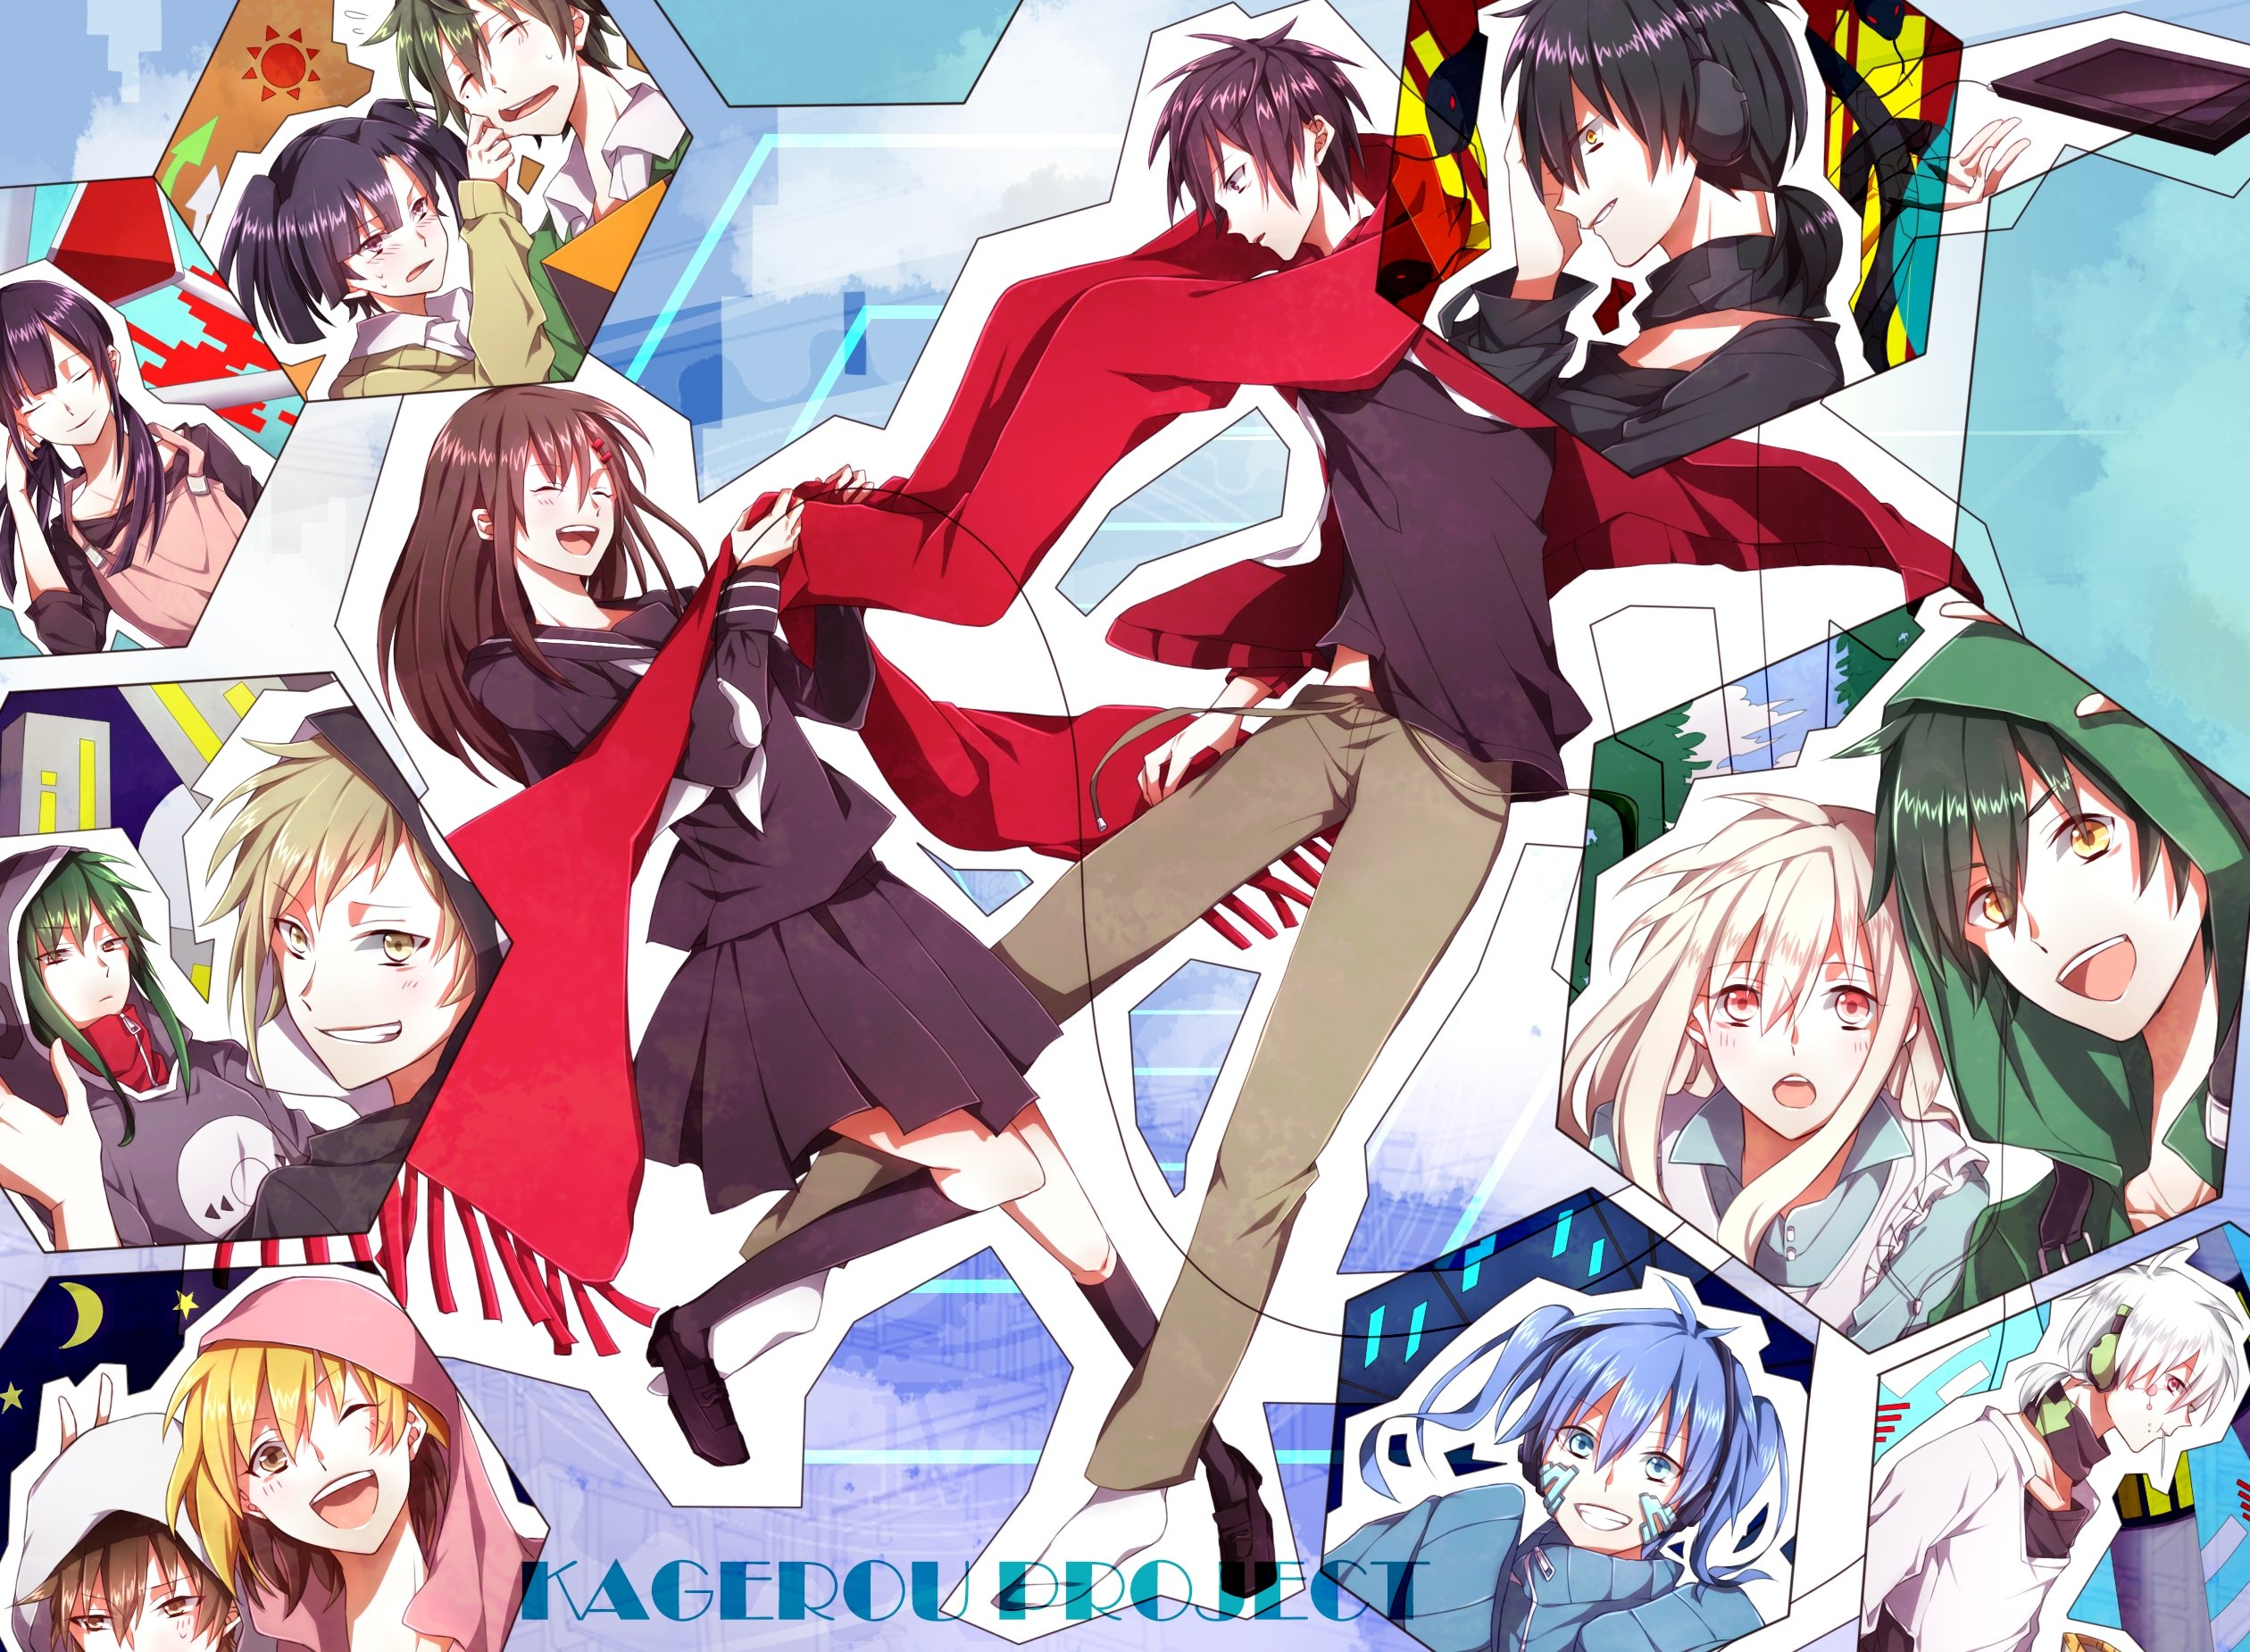 Kagerou Project Hd Wallpaper Background Image 2520x1850 Id